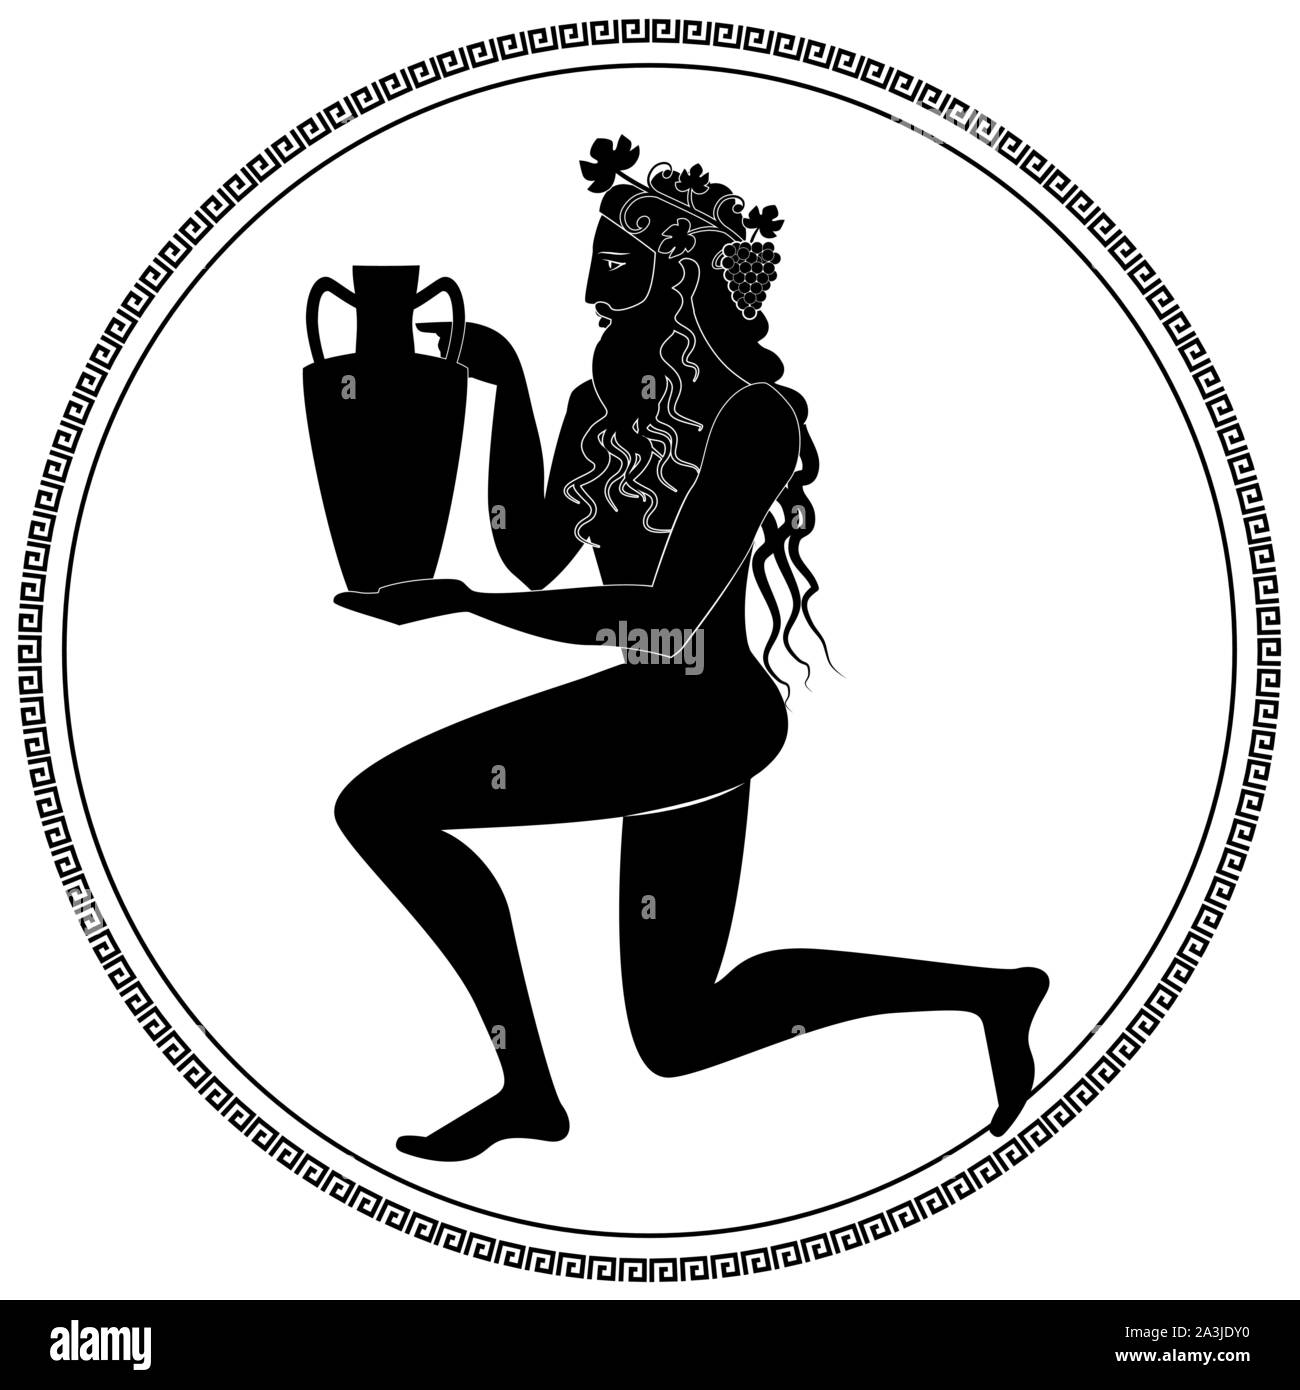 Man Knee On Land Holding An Amphora Wearing Crown Of Grape Leaves And Bunches Of Grapes Representation Of The God Dionysus Greek Circular Ornament Stock Vector Image Art Alamy Search more high quality free transparent png images on pngkey.com and share it with your friends. https www alamy com man knee on land holding an amphora wearing crown of grape leaves and bunches of grapes representation of the god dionysus greek circular ornament image329247044 html